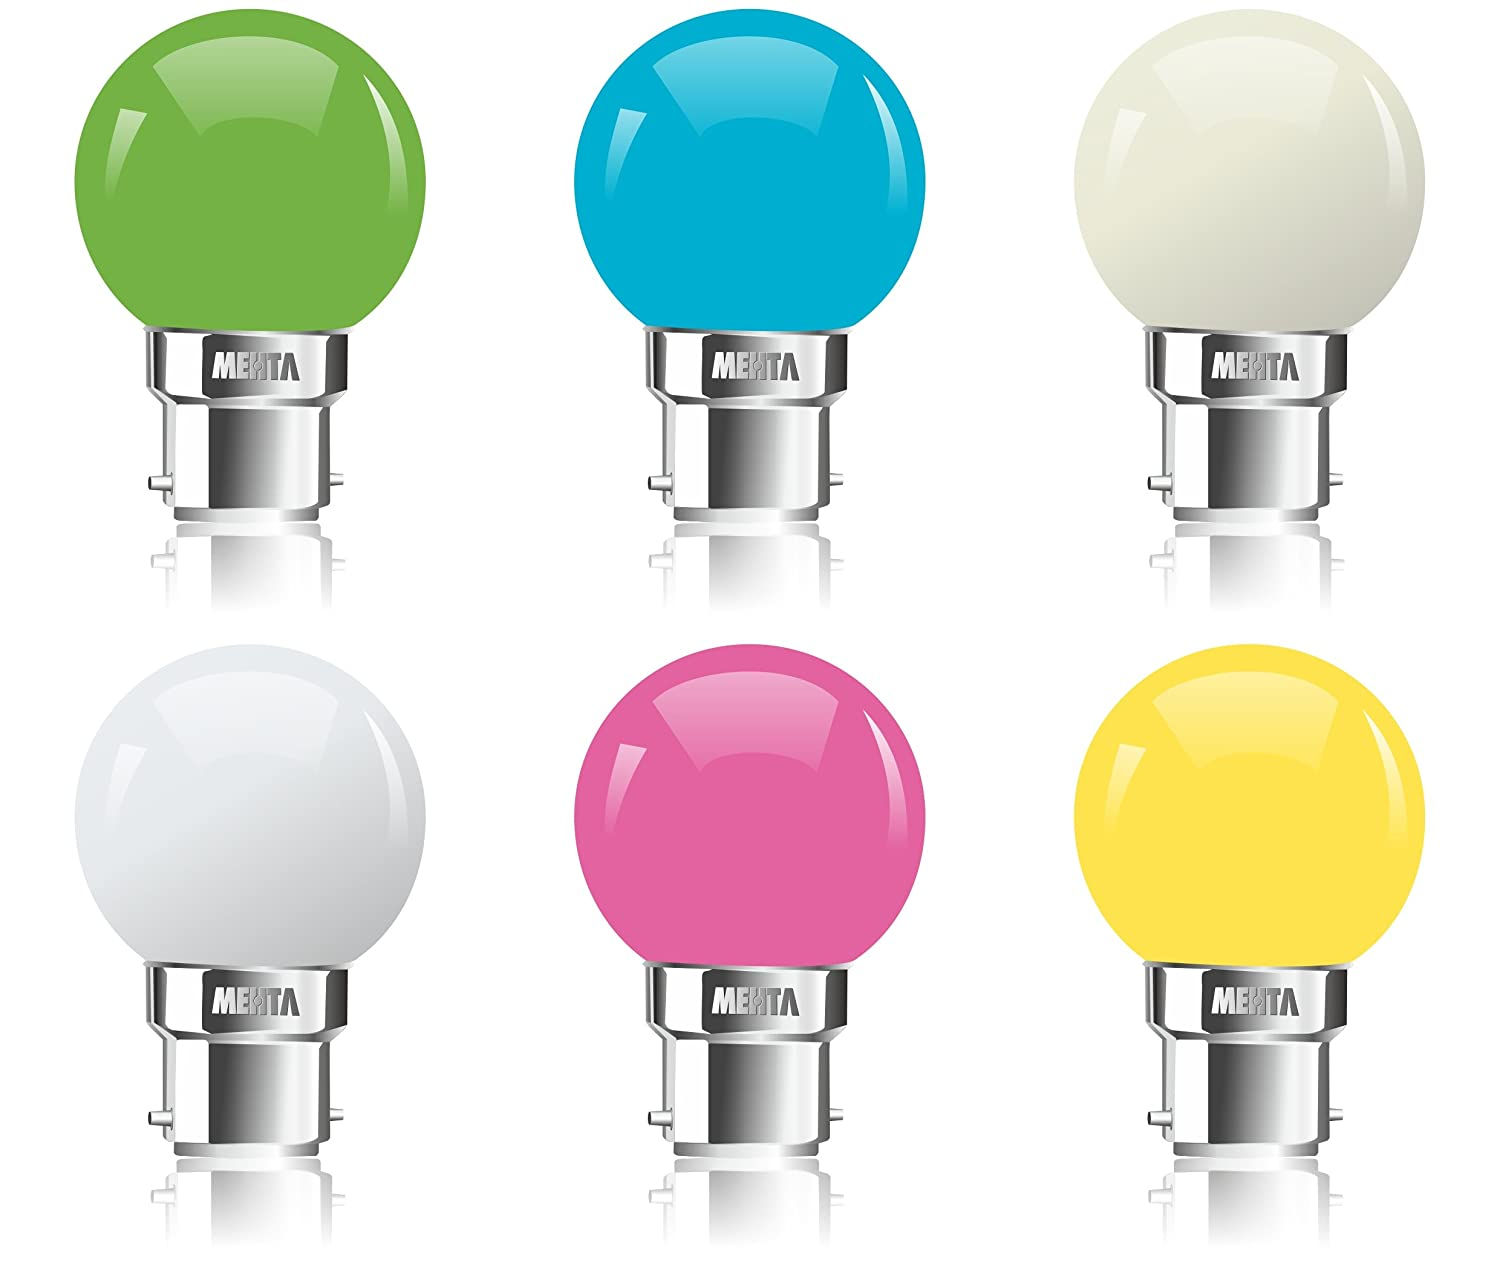 Buy Mehta Empower India Zero Watt Led Night Lamp Blue Green White Warm White Pink Yellow 11015 Online At Low Prices In India Amazon In